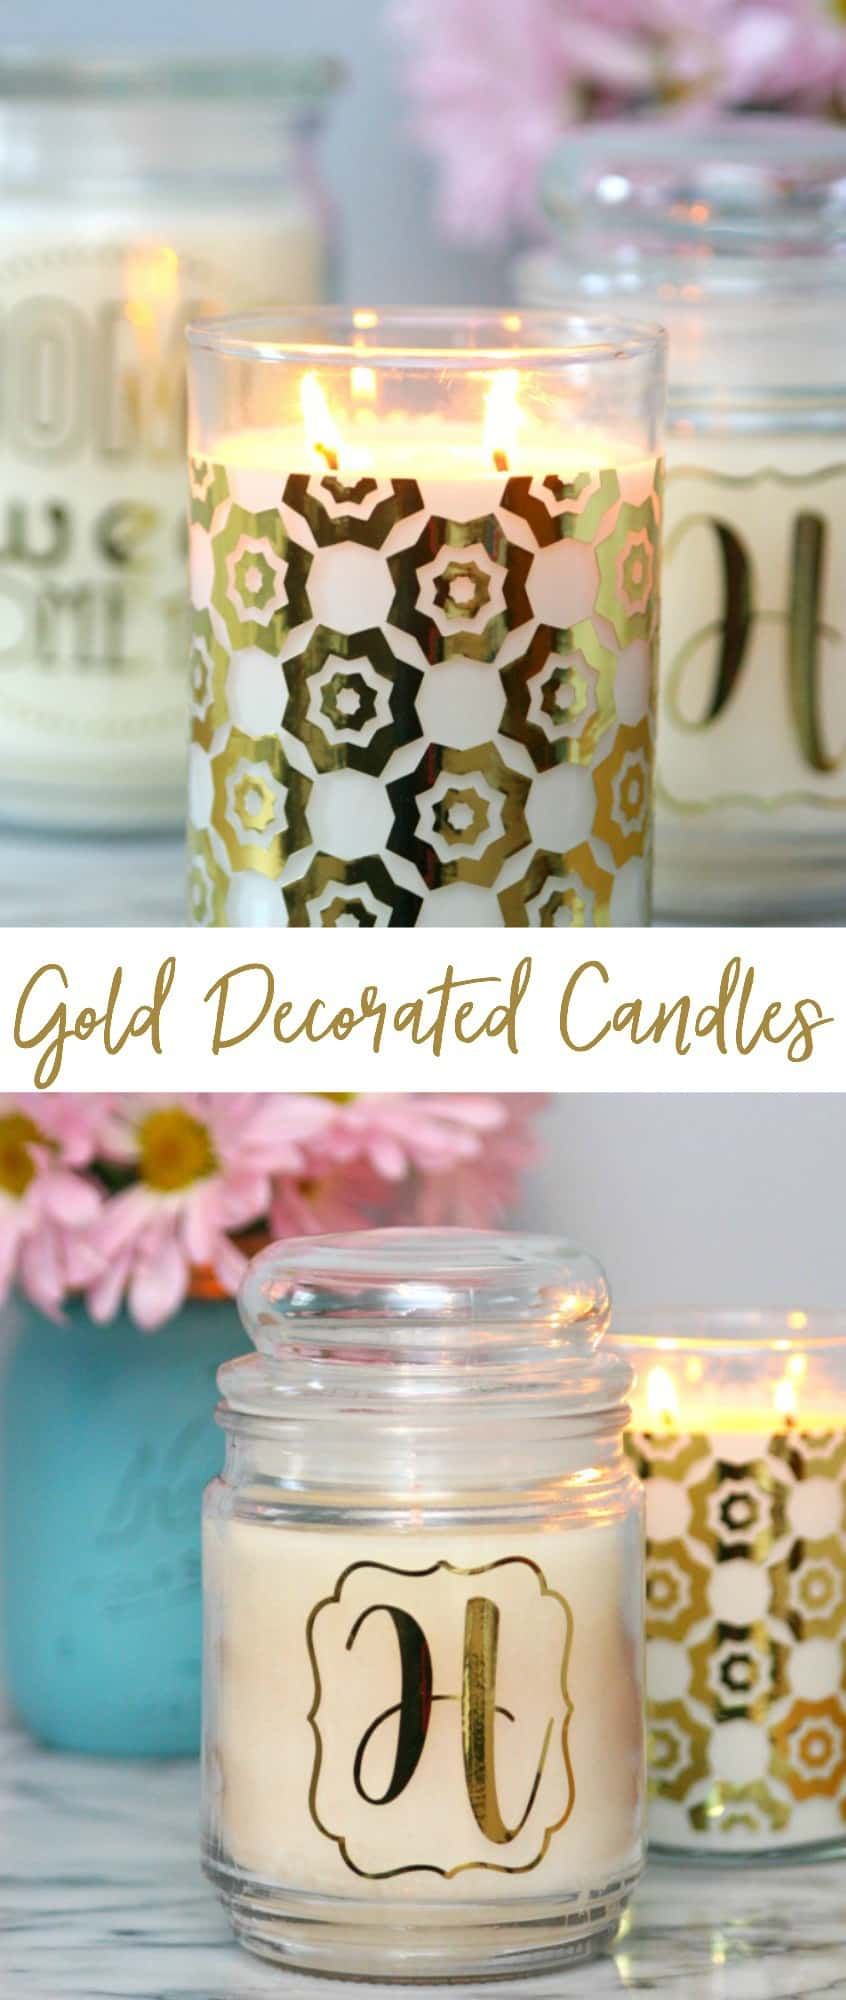 gold decorated candles pinterest